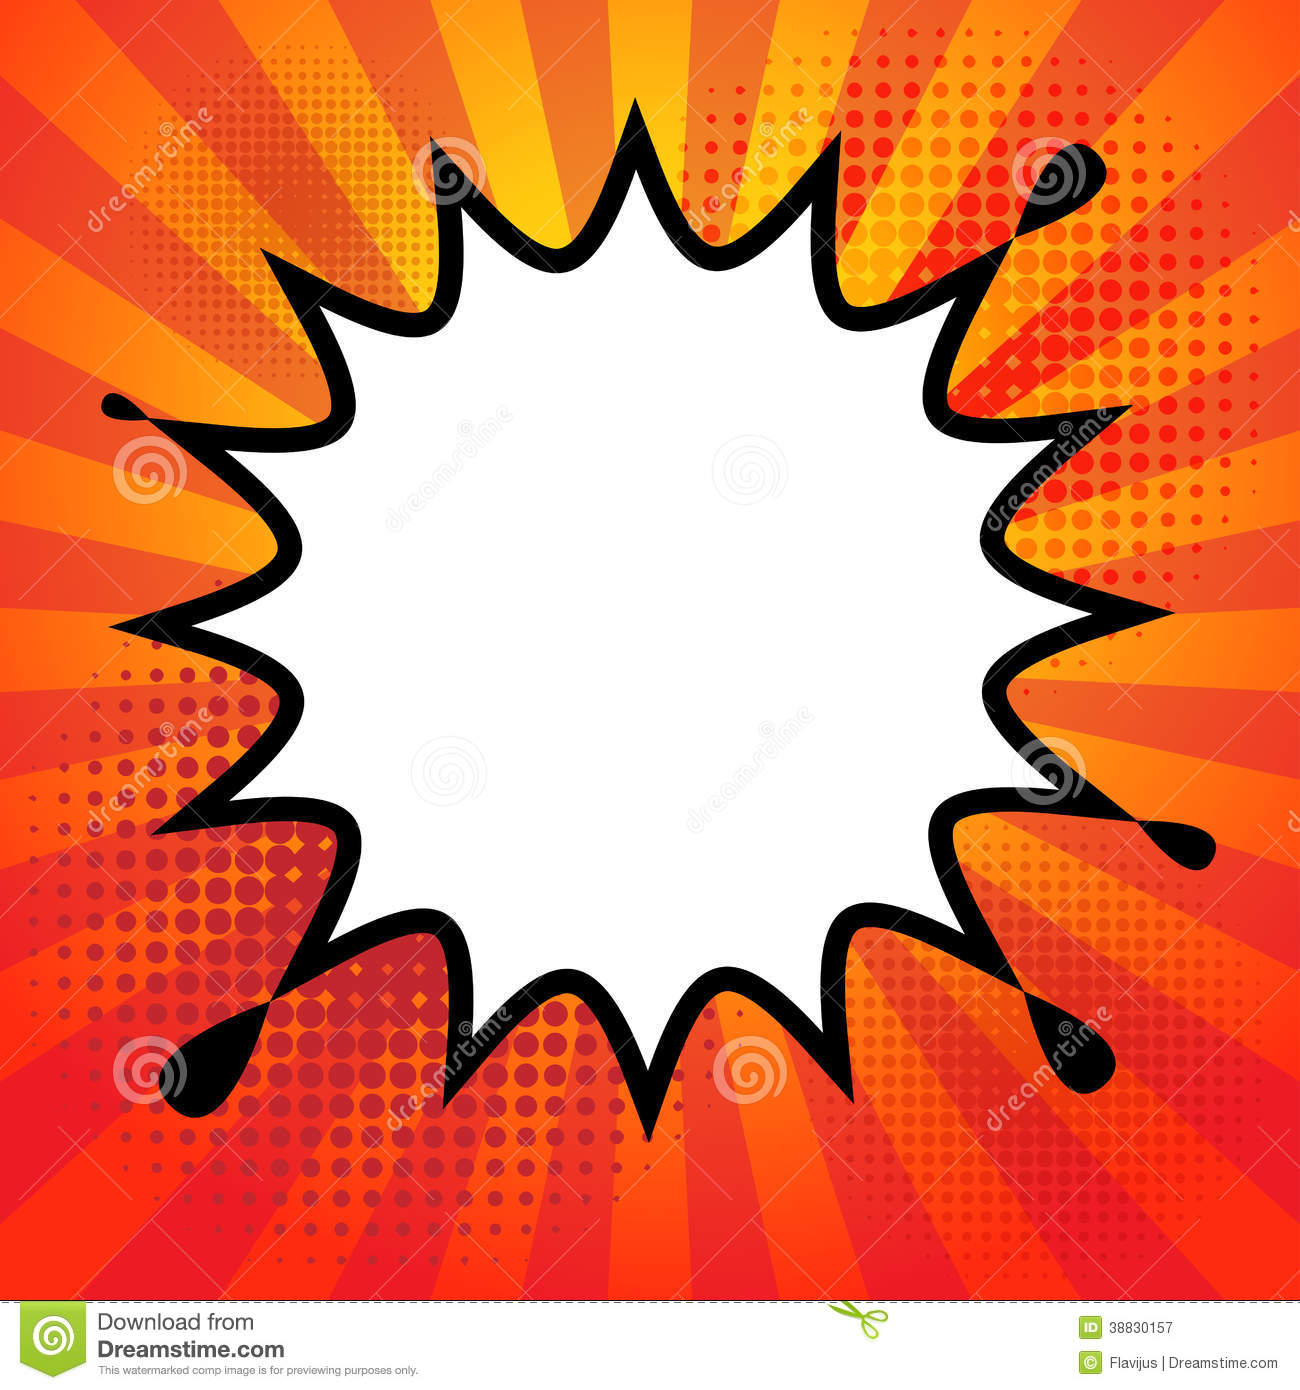 Comic book explosion stock vector. Illustration of abstract - 38830157